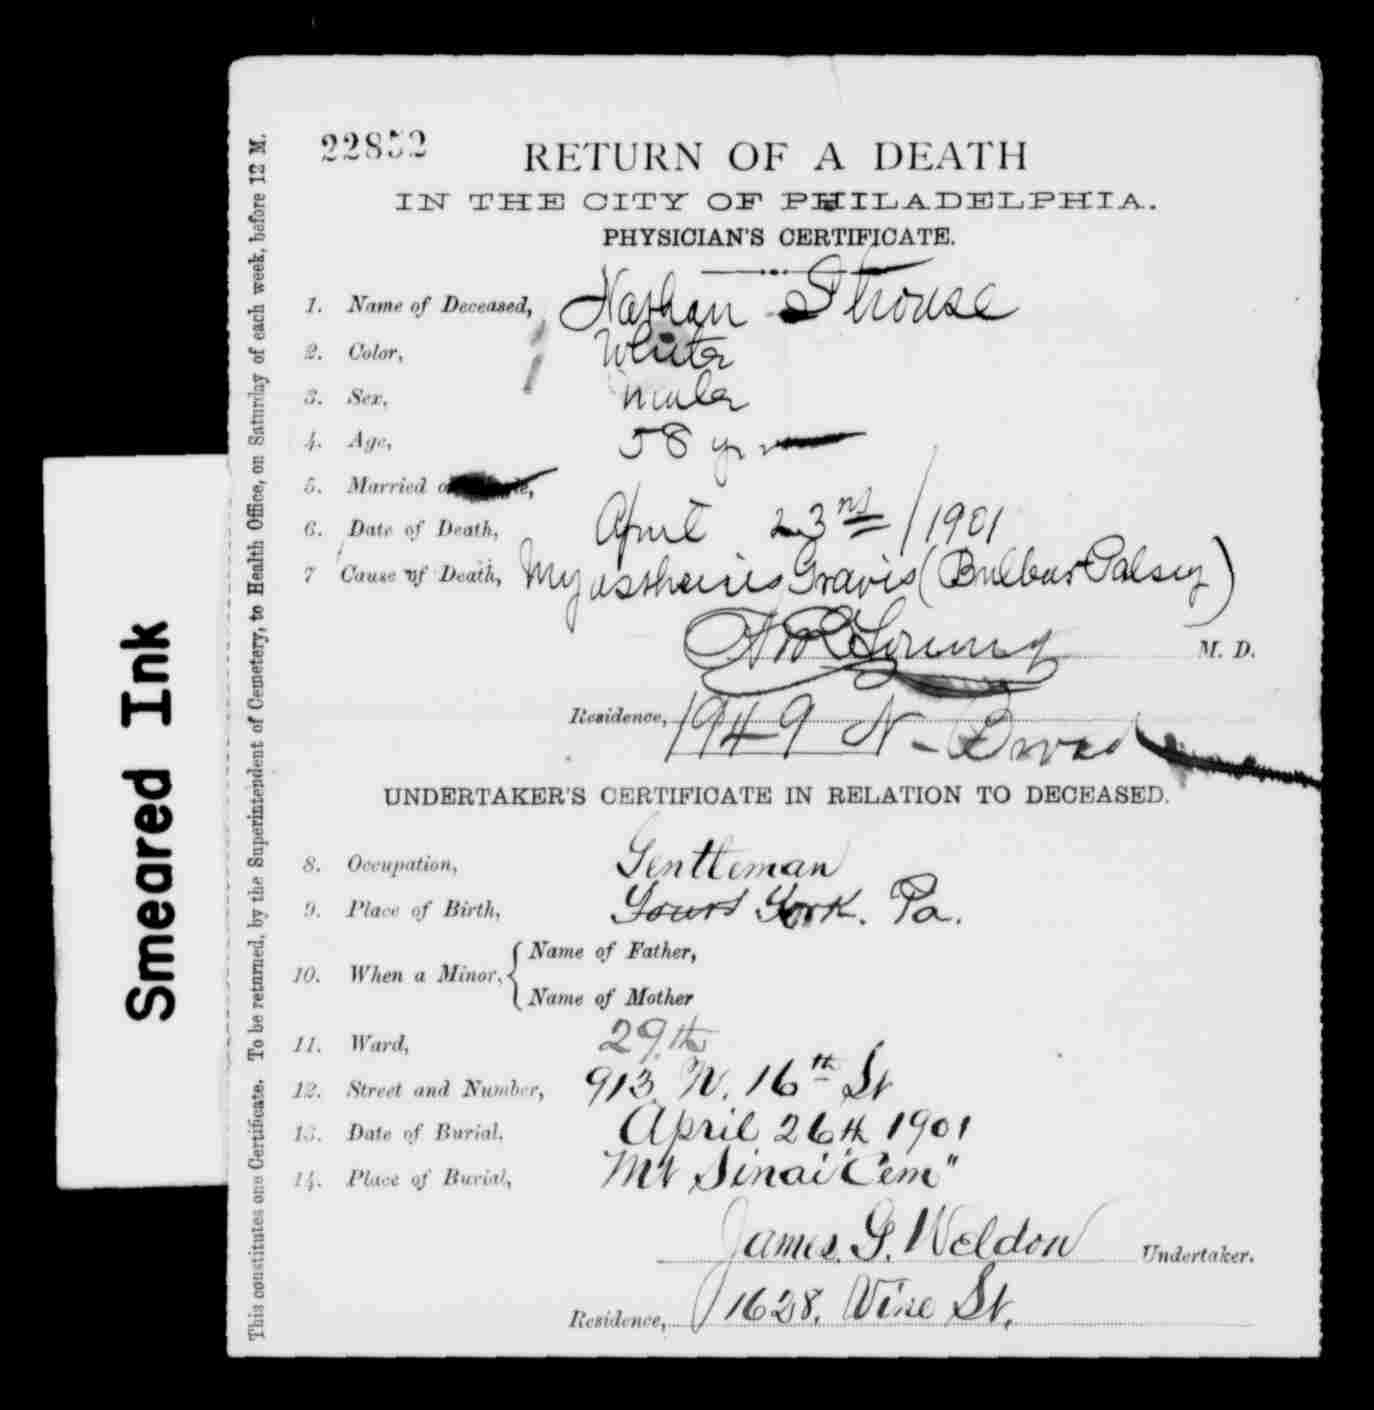 University of pennsylvania brotmanblog a family journey nathan strouse death certificate pennsylvania aiddatafo Images